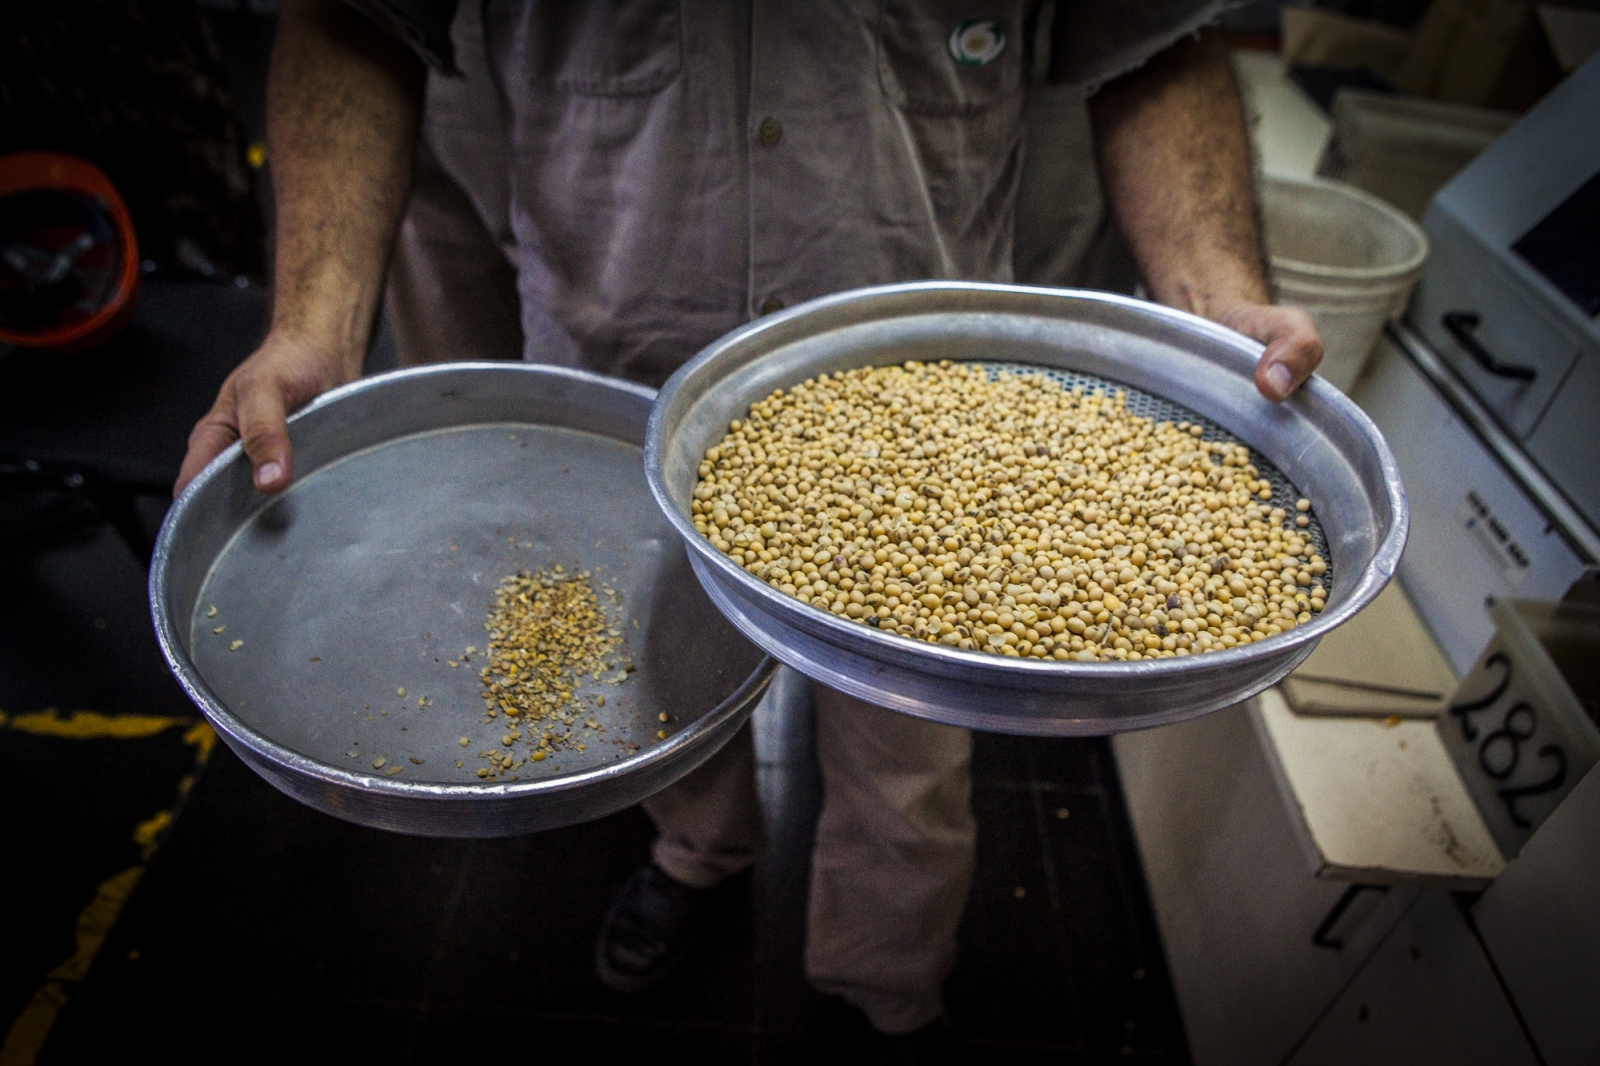 A worker strains a sample of soybeans to get rid off impurities, inside the testing office at Terminal 6 of the General San Martín Port, San Lorenzo. These is done to understand the quality of the grains delivered and the value of the cargo, previously hoovered from a truck. Around 1,300 trucks deliver grains at Terminal 6, representing 40,000 tons a day, which is half of the capacity that the port can recive in one single day. Terminal 6 is the largest of its kind in South America where 80,000 tons per day are received by trucks, trains and boats. The grains are then process at the plant located at the port and then shipped worldwide.